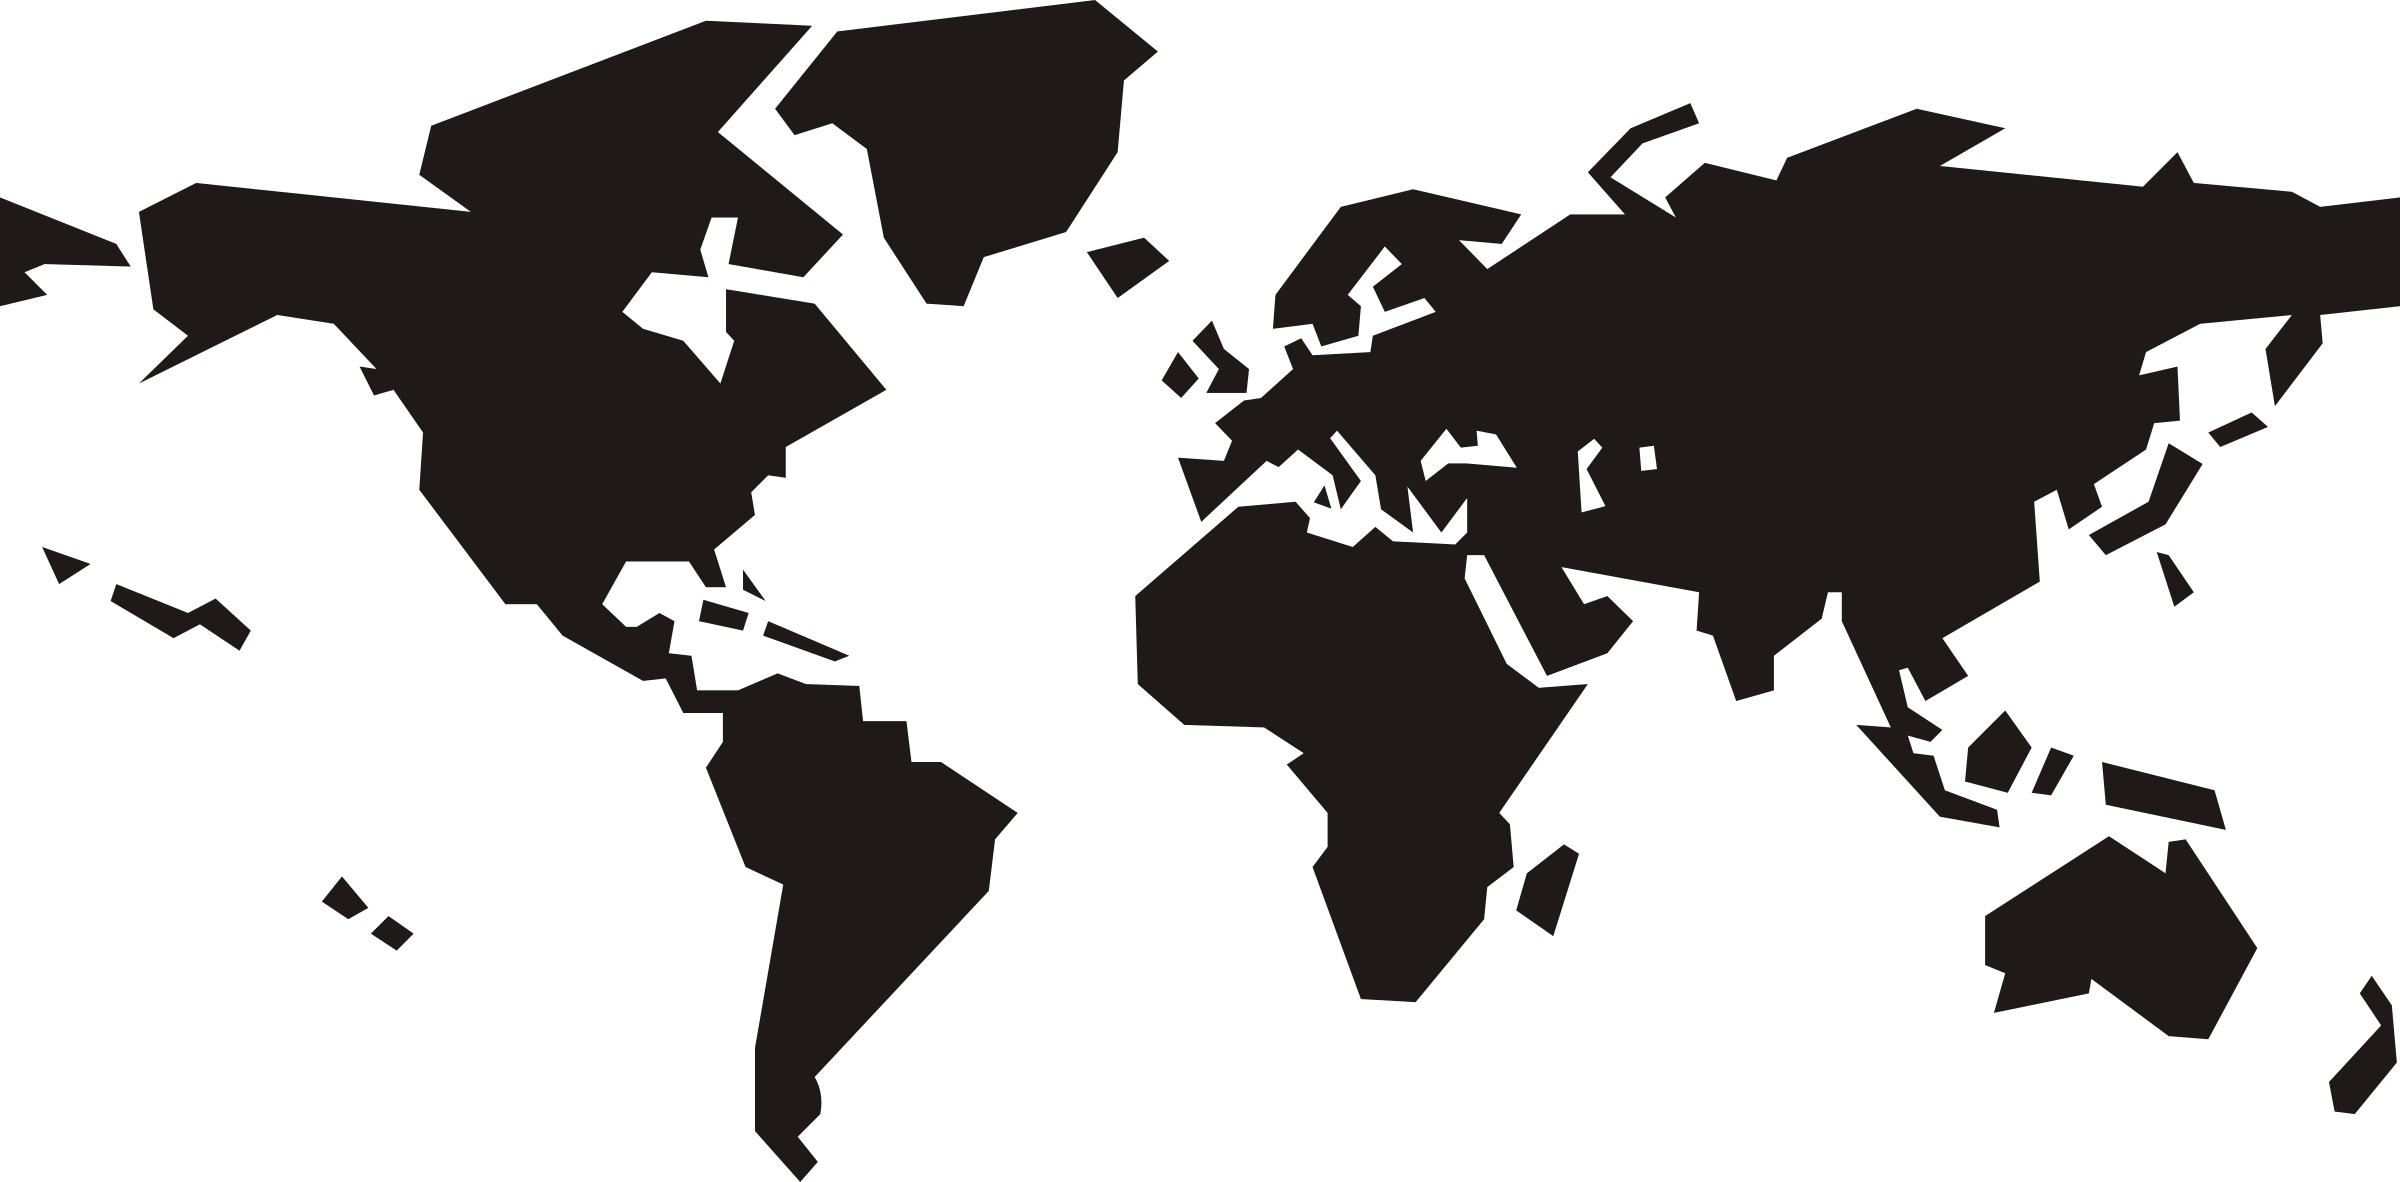 World map icon png. Icons free and downloads